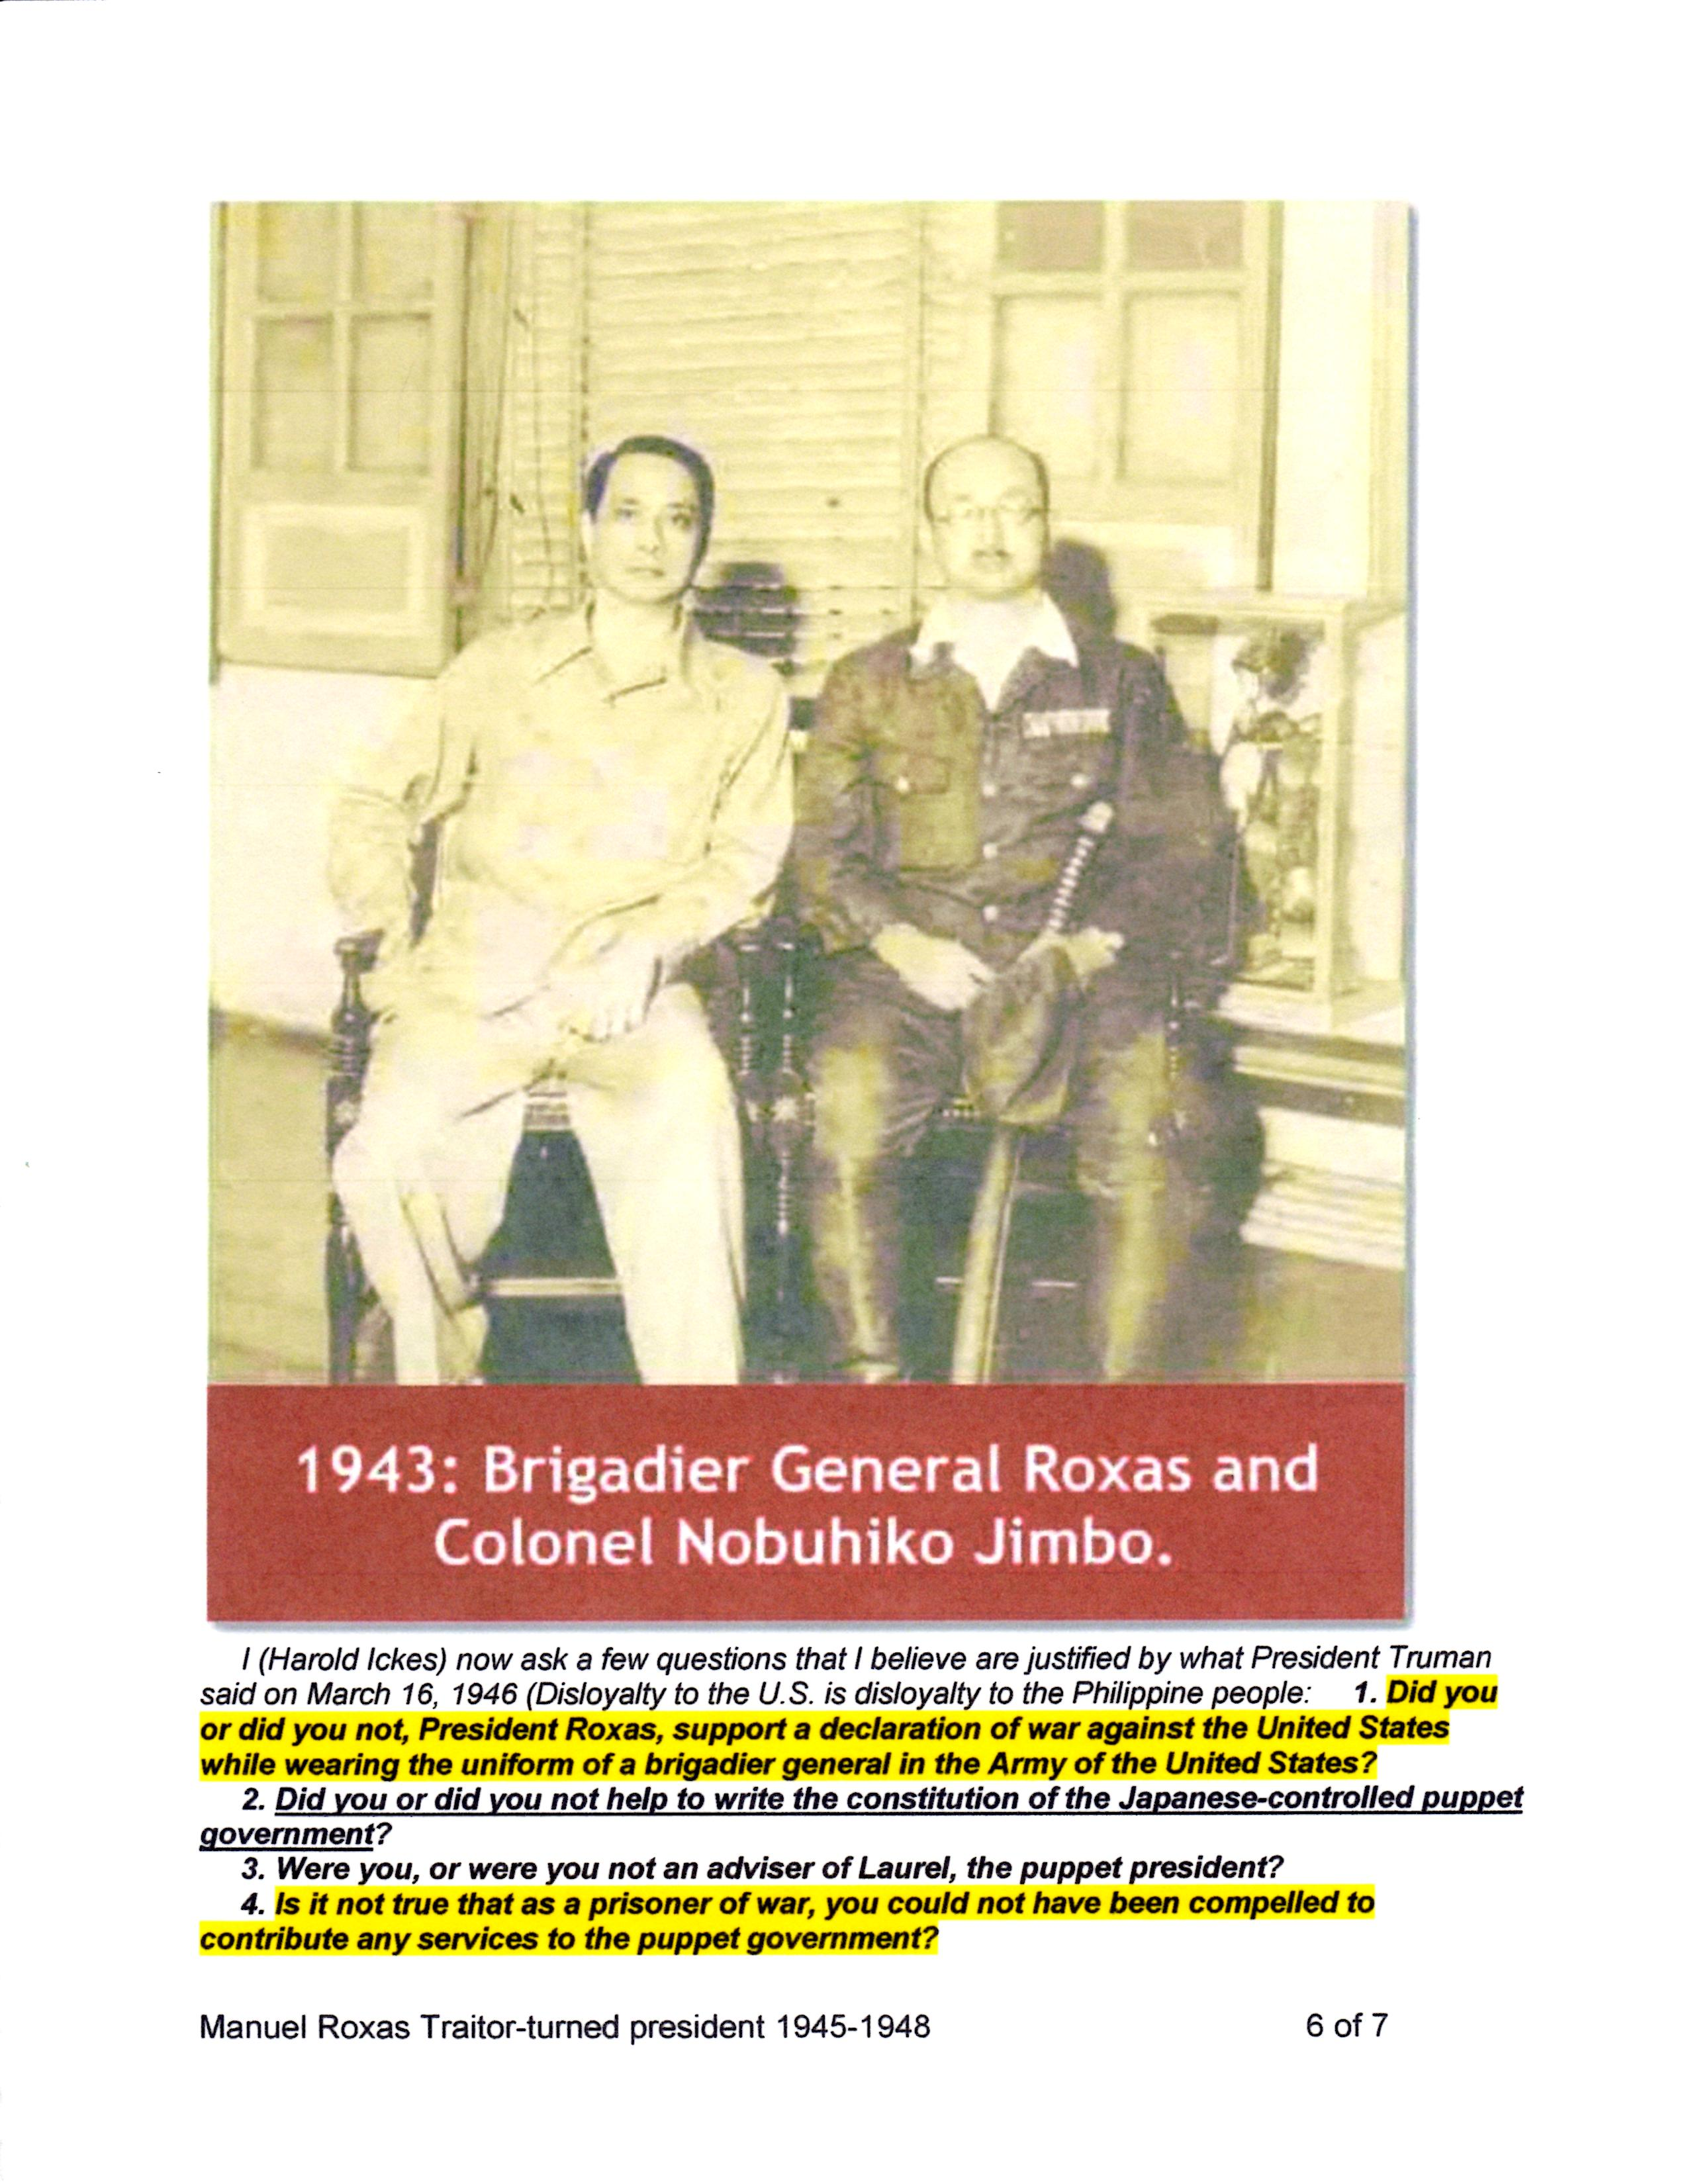 Oligarch-Traitor Exposed - It was US Sec. of Interior Harold Ickes who questioned Manuel Roxas' war record in an editorial published on July 22, 1946.